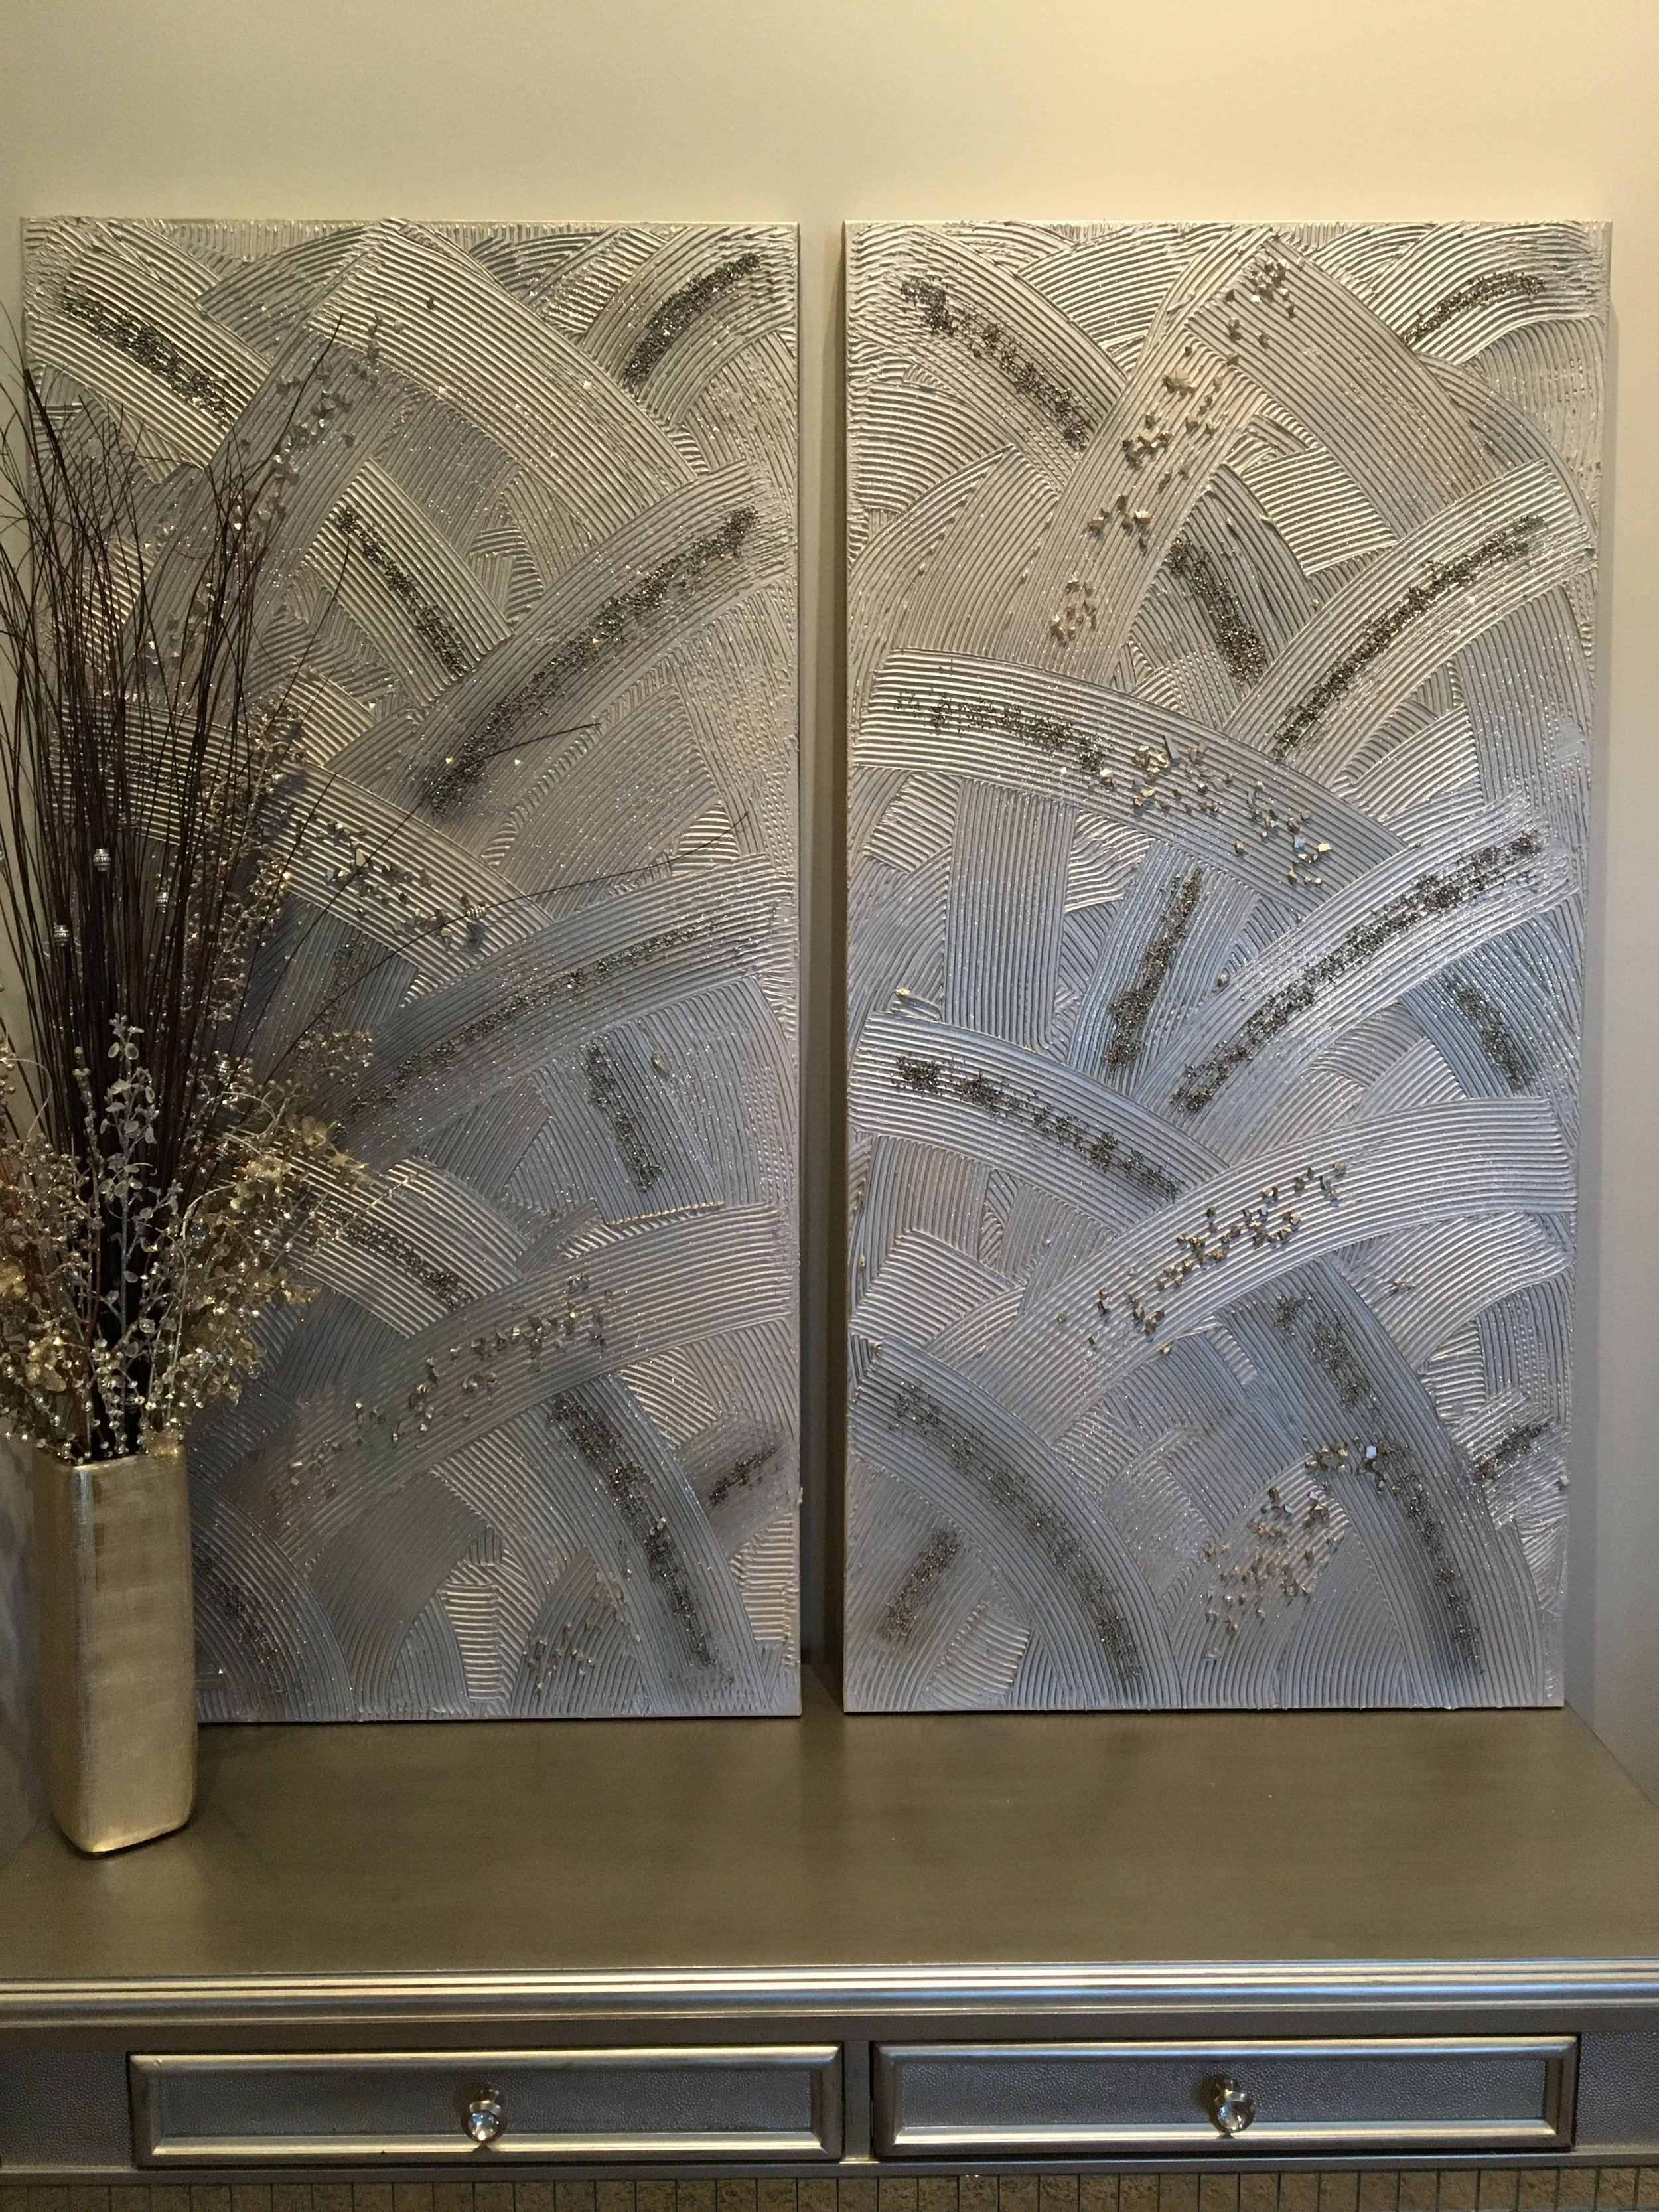 'Satin Feathers' has a peaceful movement to it in Silver and grey tones with stones to bring more texture and movement. Shown in two 24x48